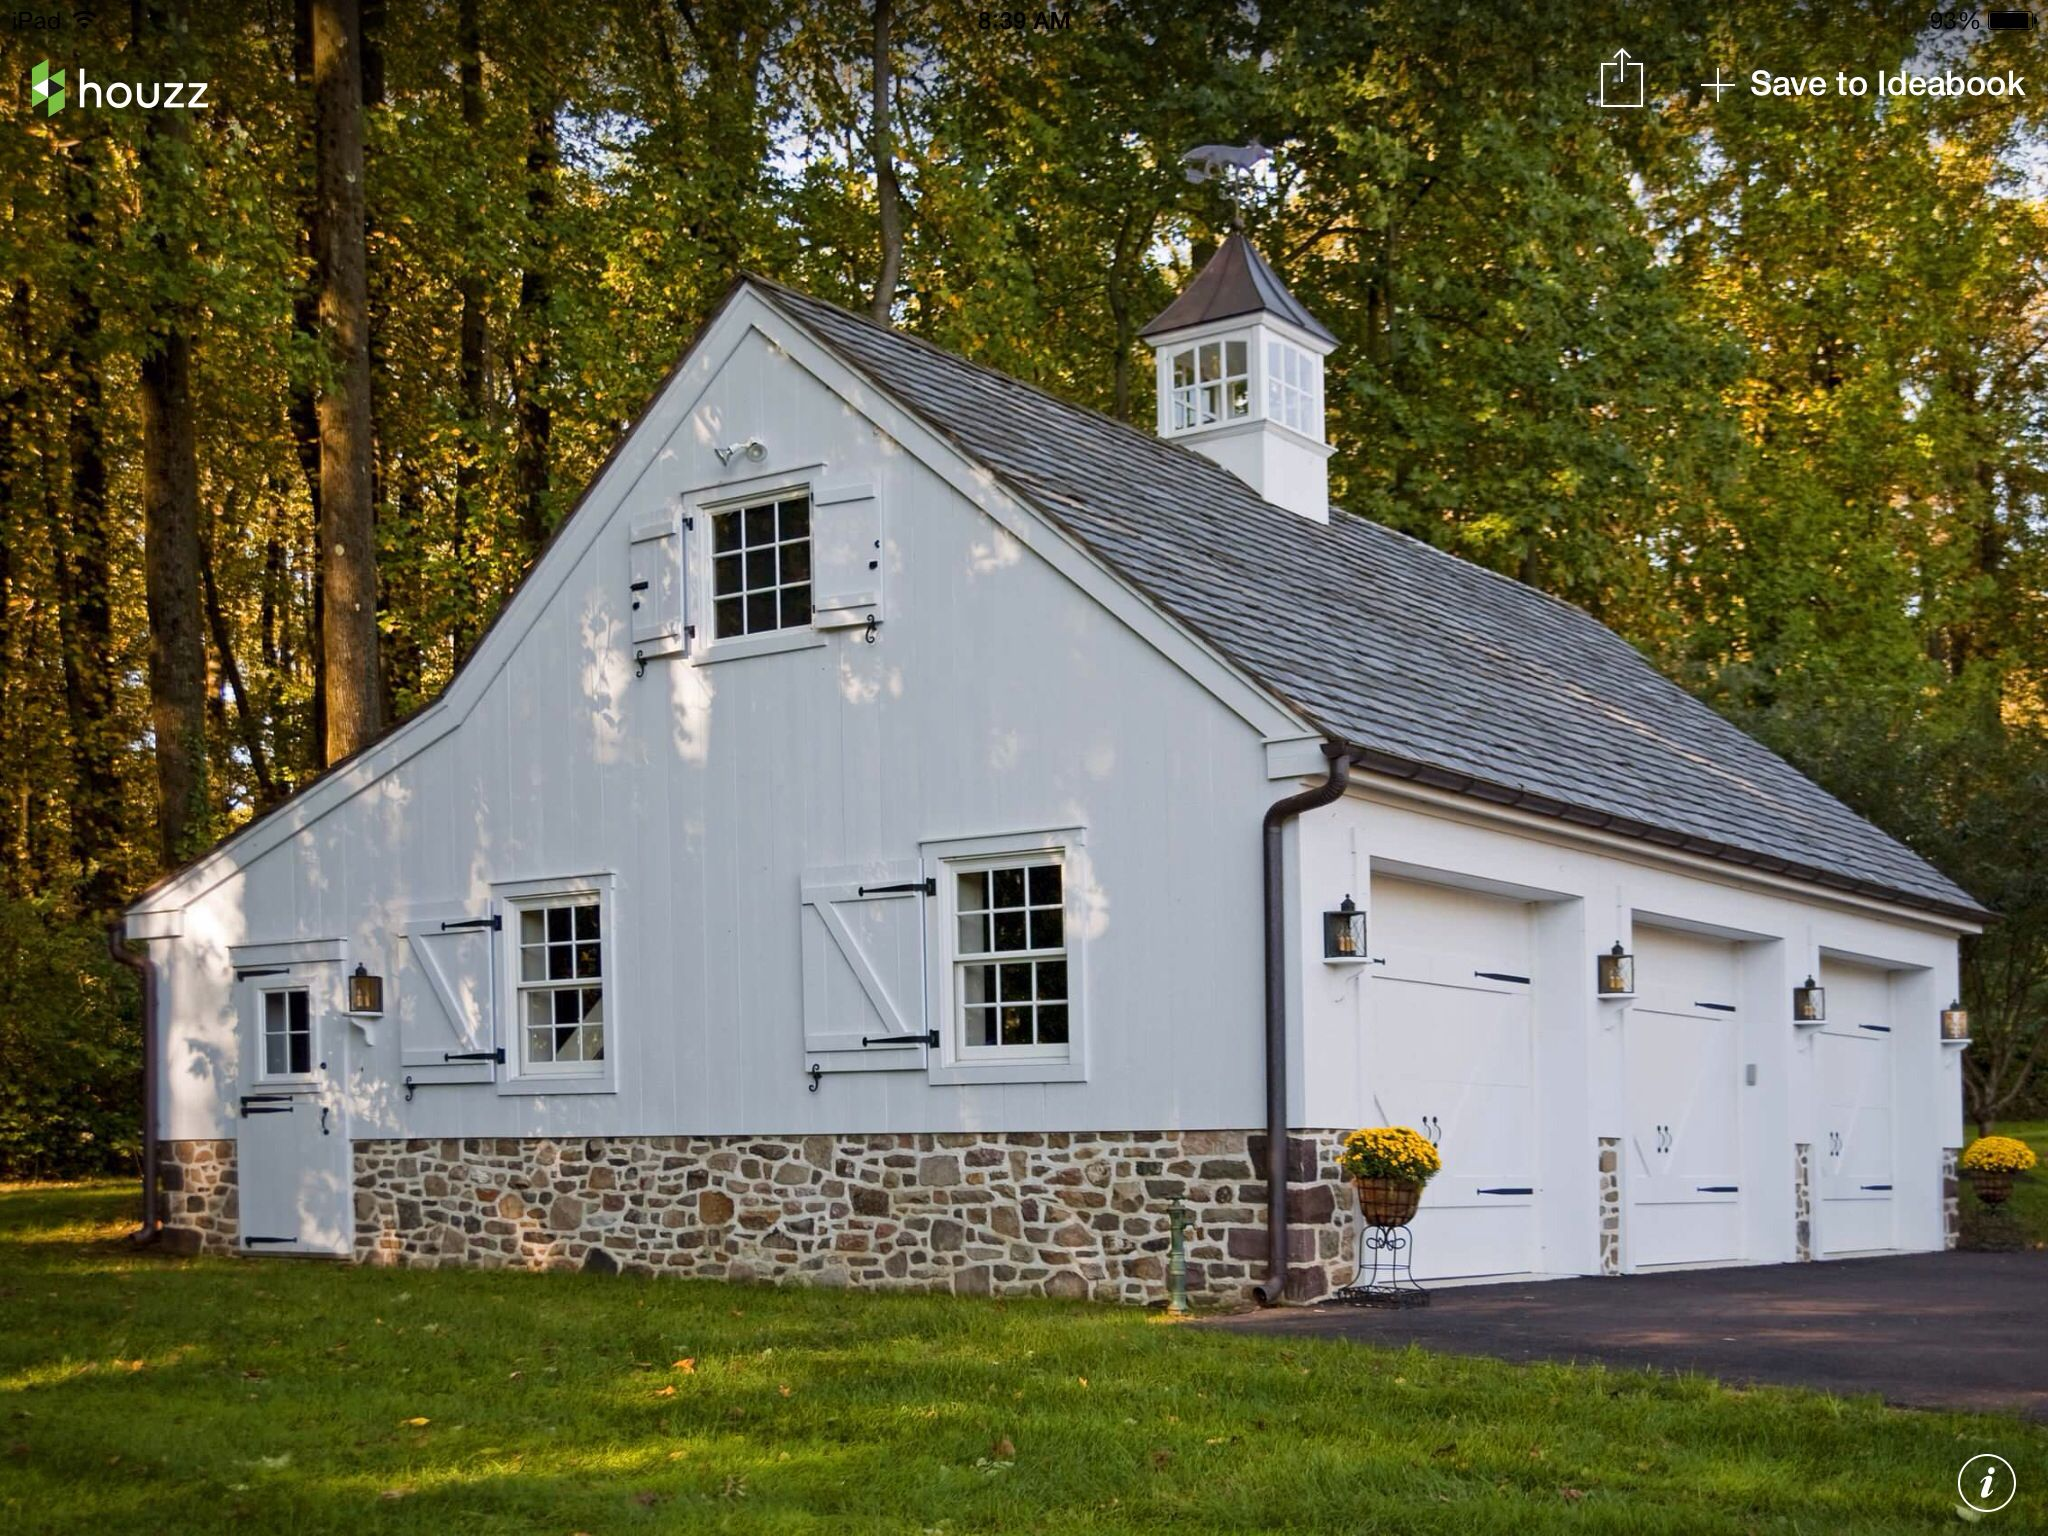 Barn style garages bing images garage ideas for Barn home design ideas